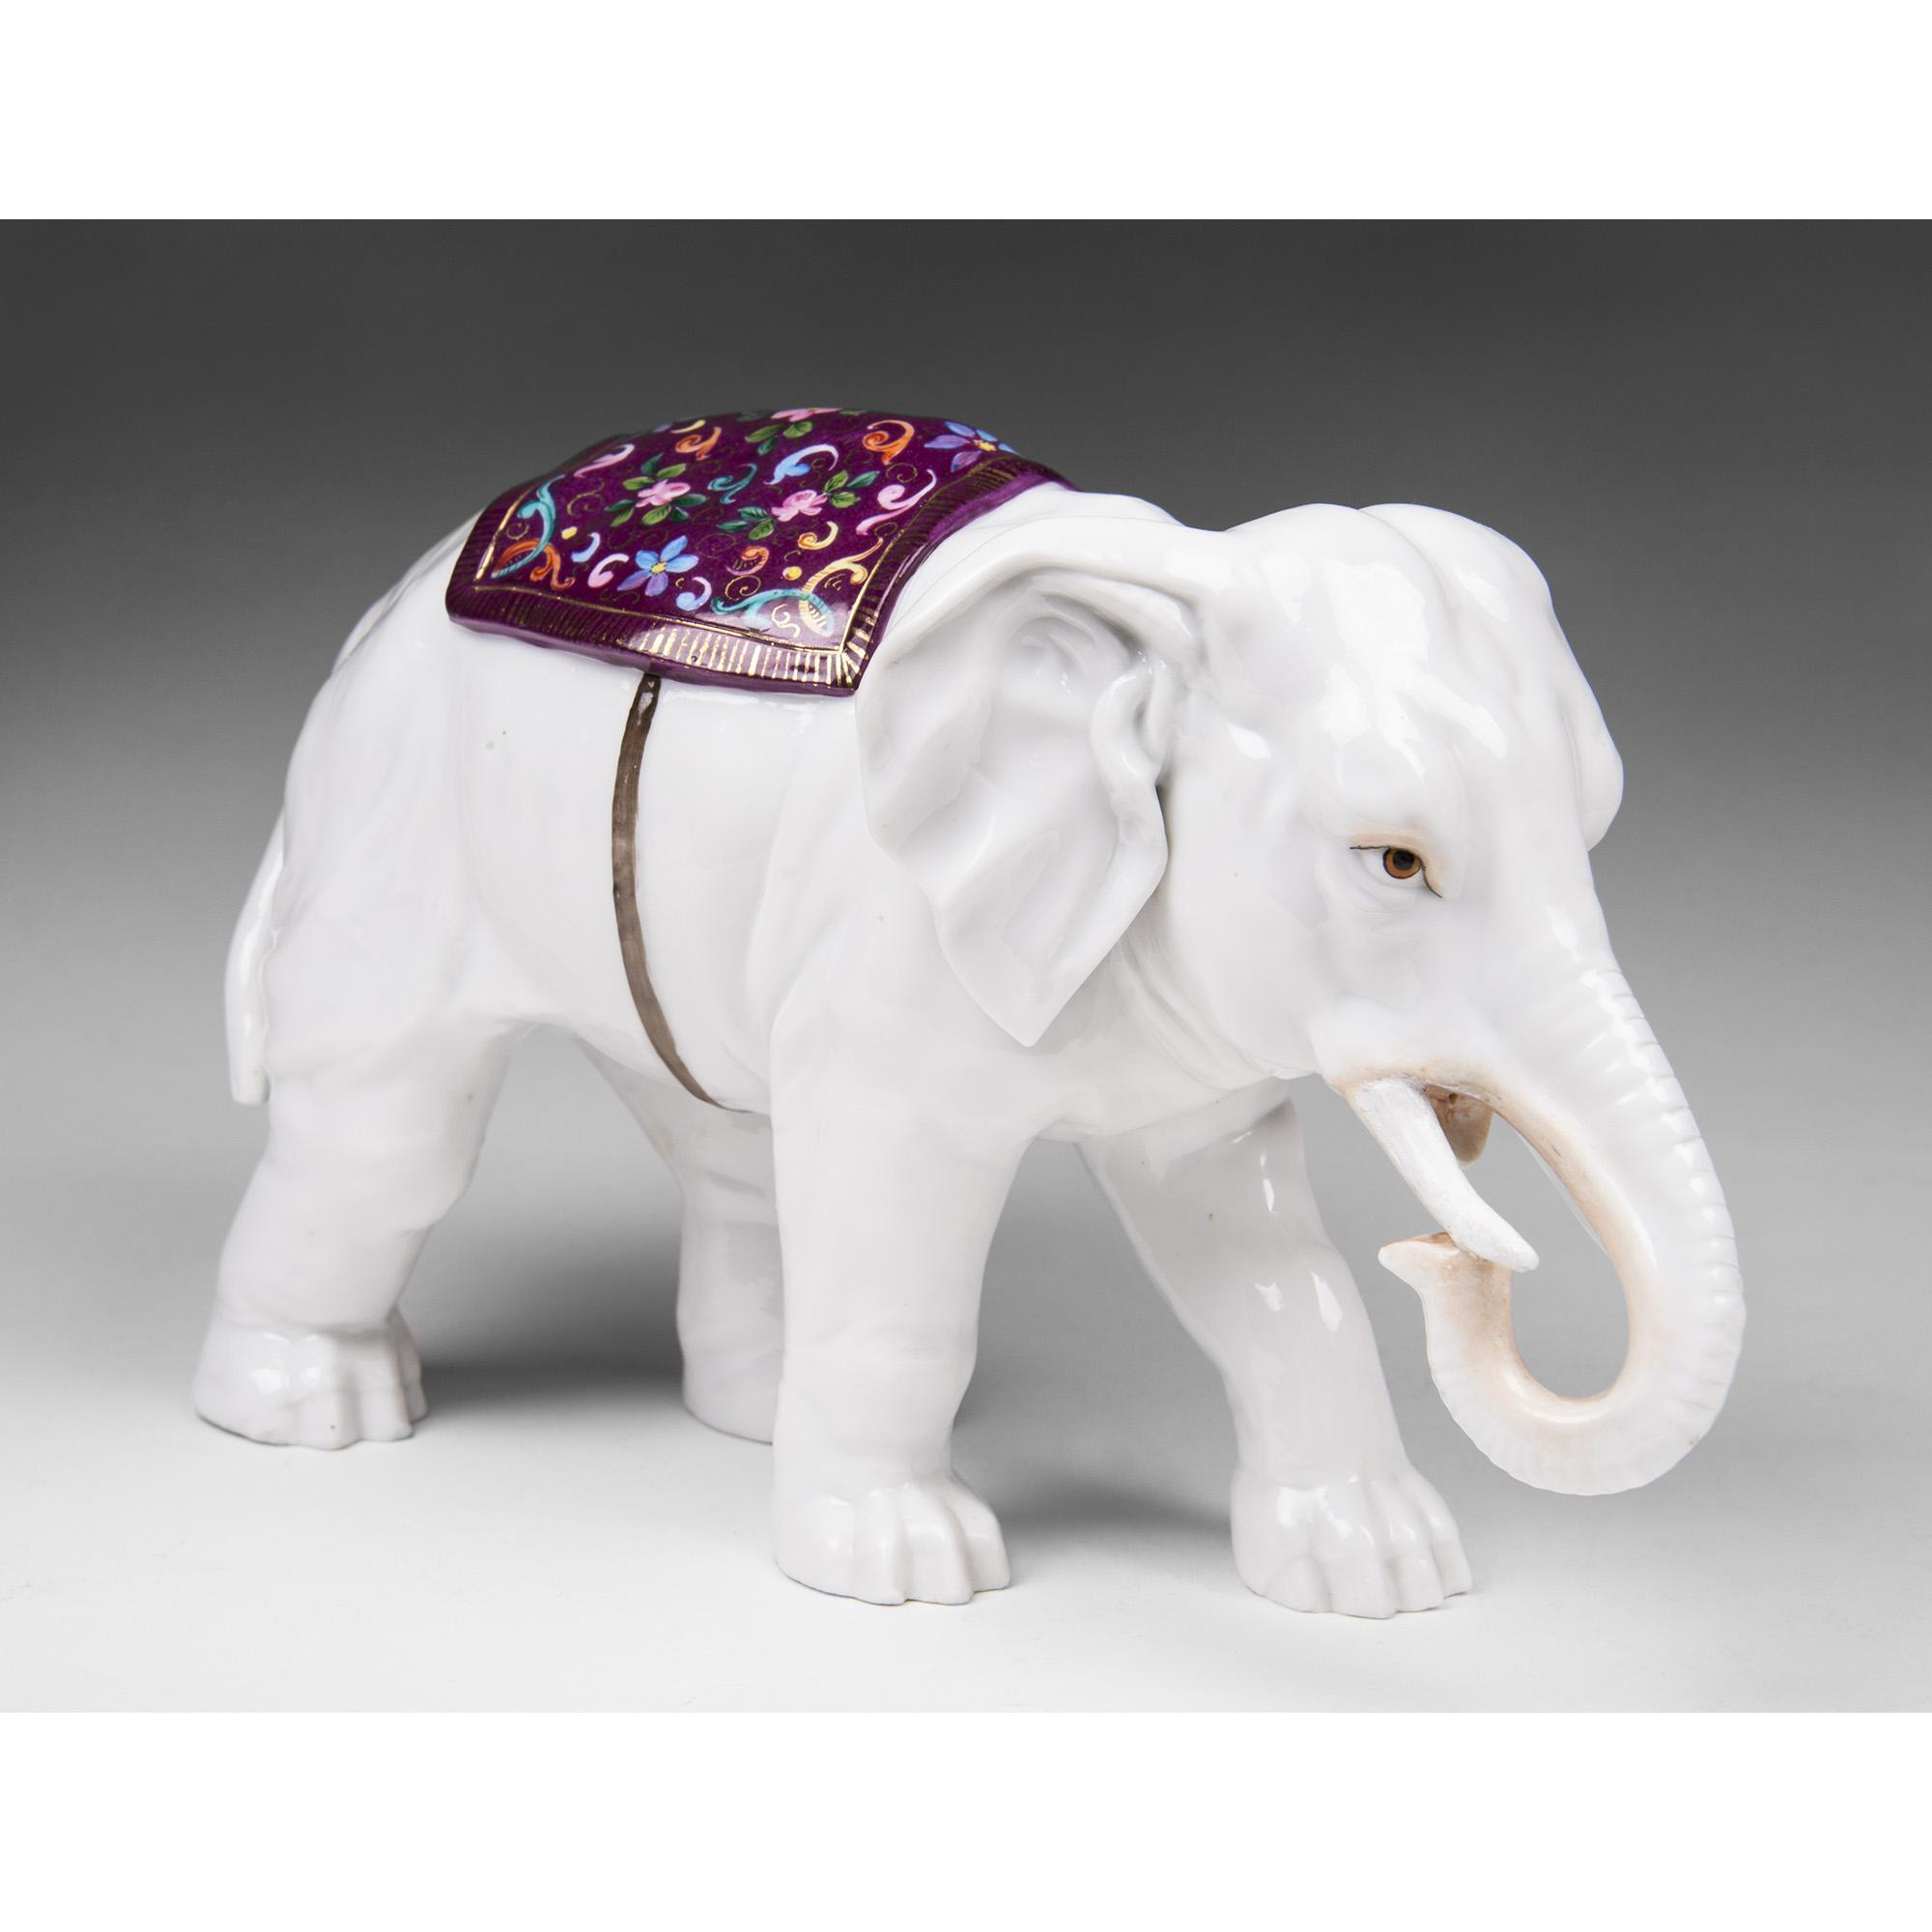 Late 19th C. Ernst Bohne Sons German Porcelain Elephant